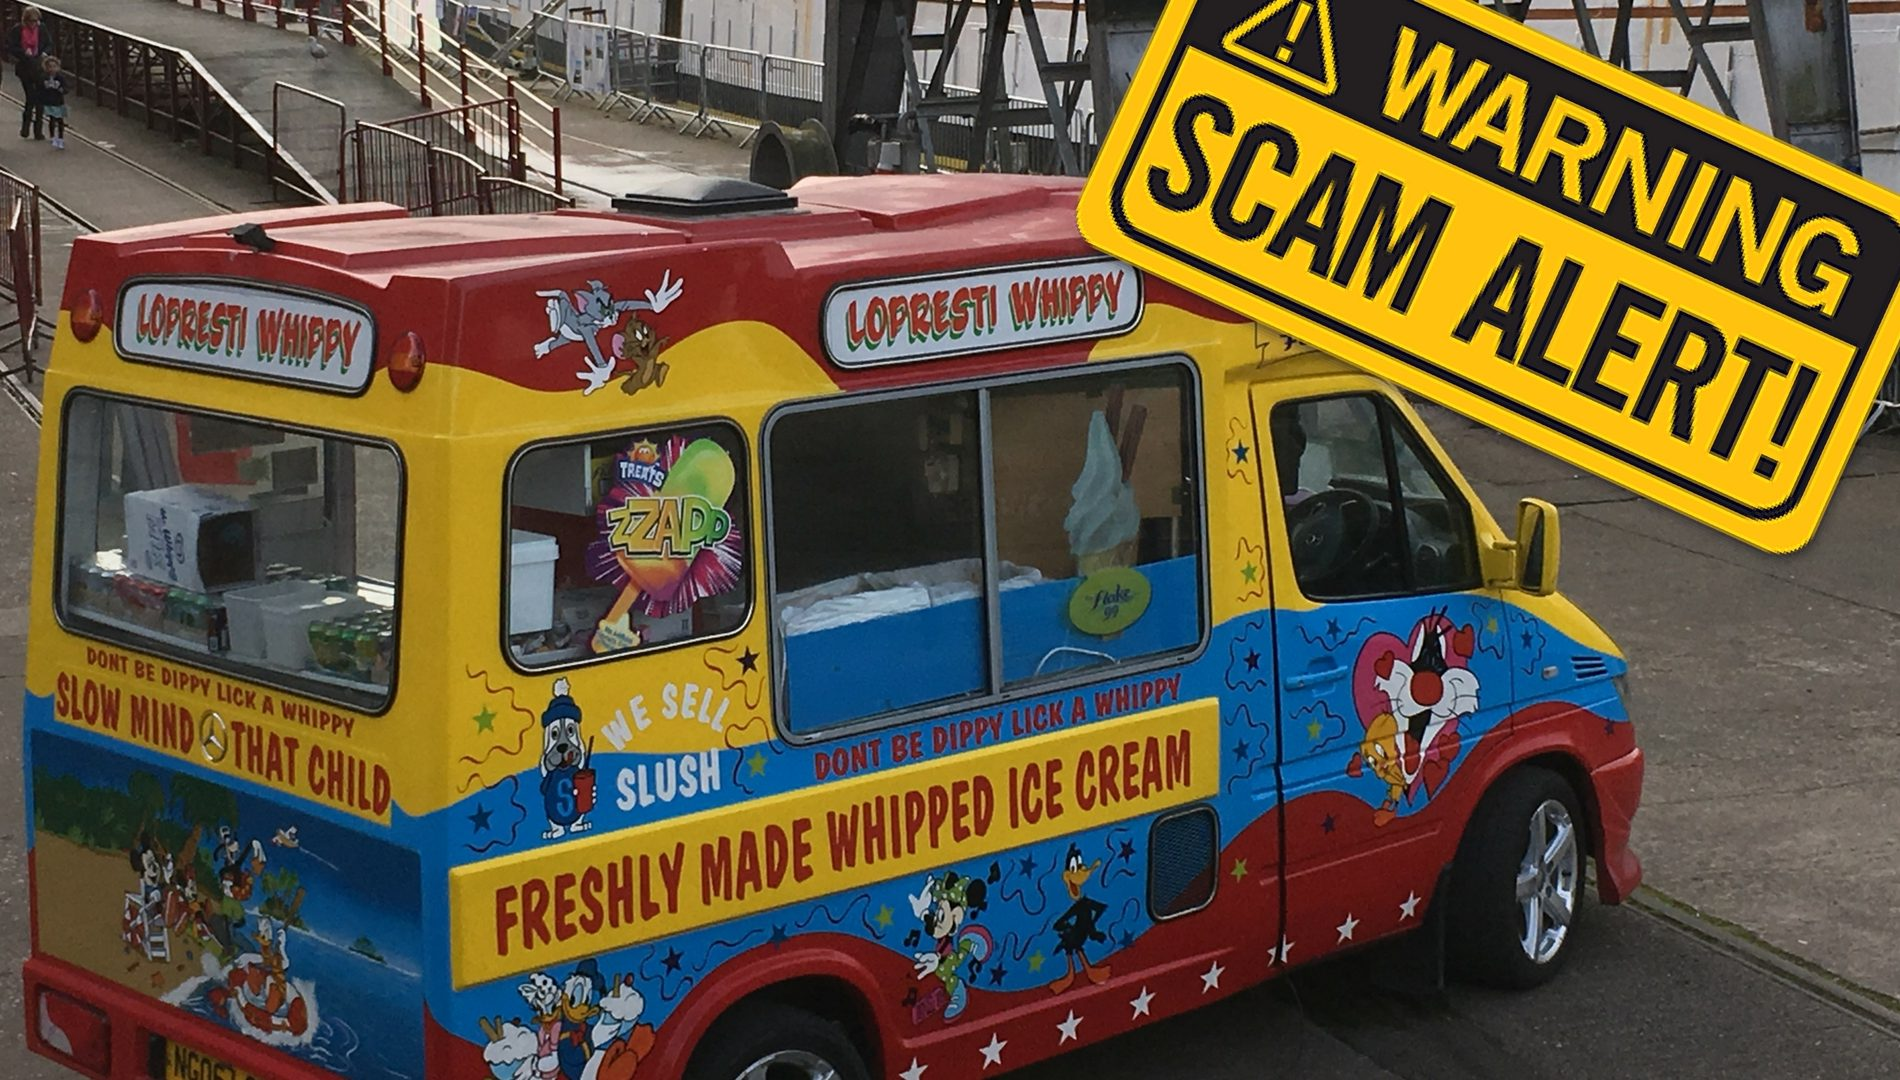 f11eb6bb0f Growing scandal at Lopresti ice creams. Council yet to act.